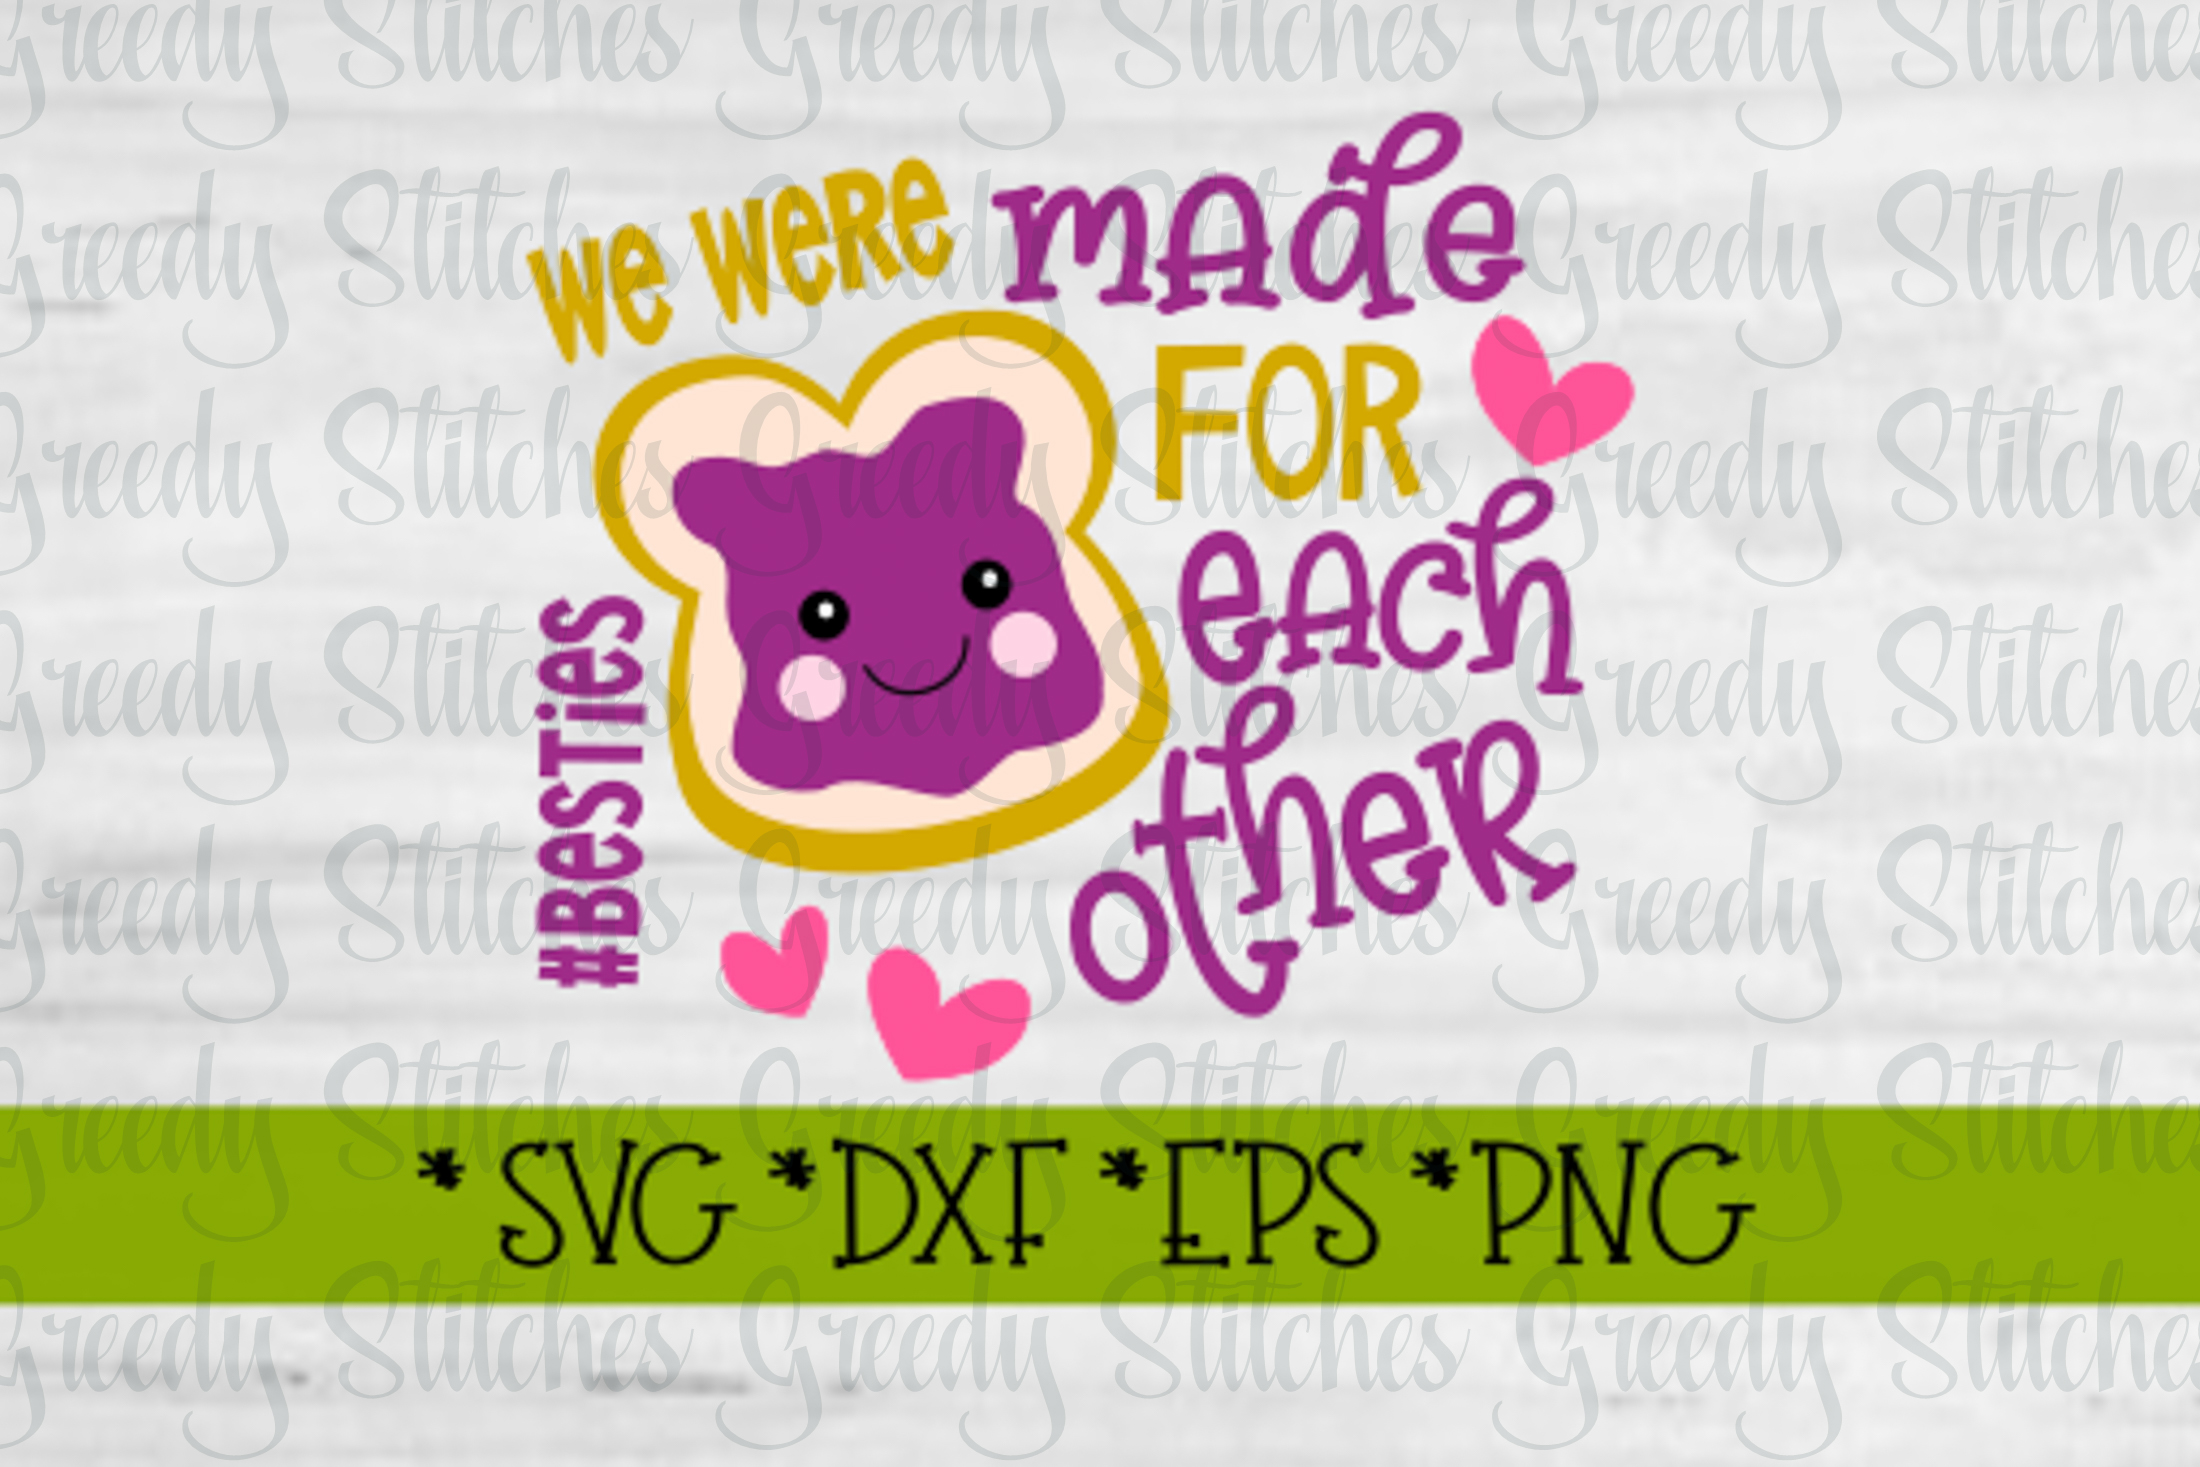 Peanut Butter & Jelly SVG DXF EPS PNG | Best Friends SVG DXF example image 10